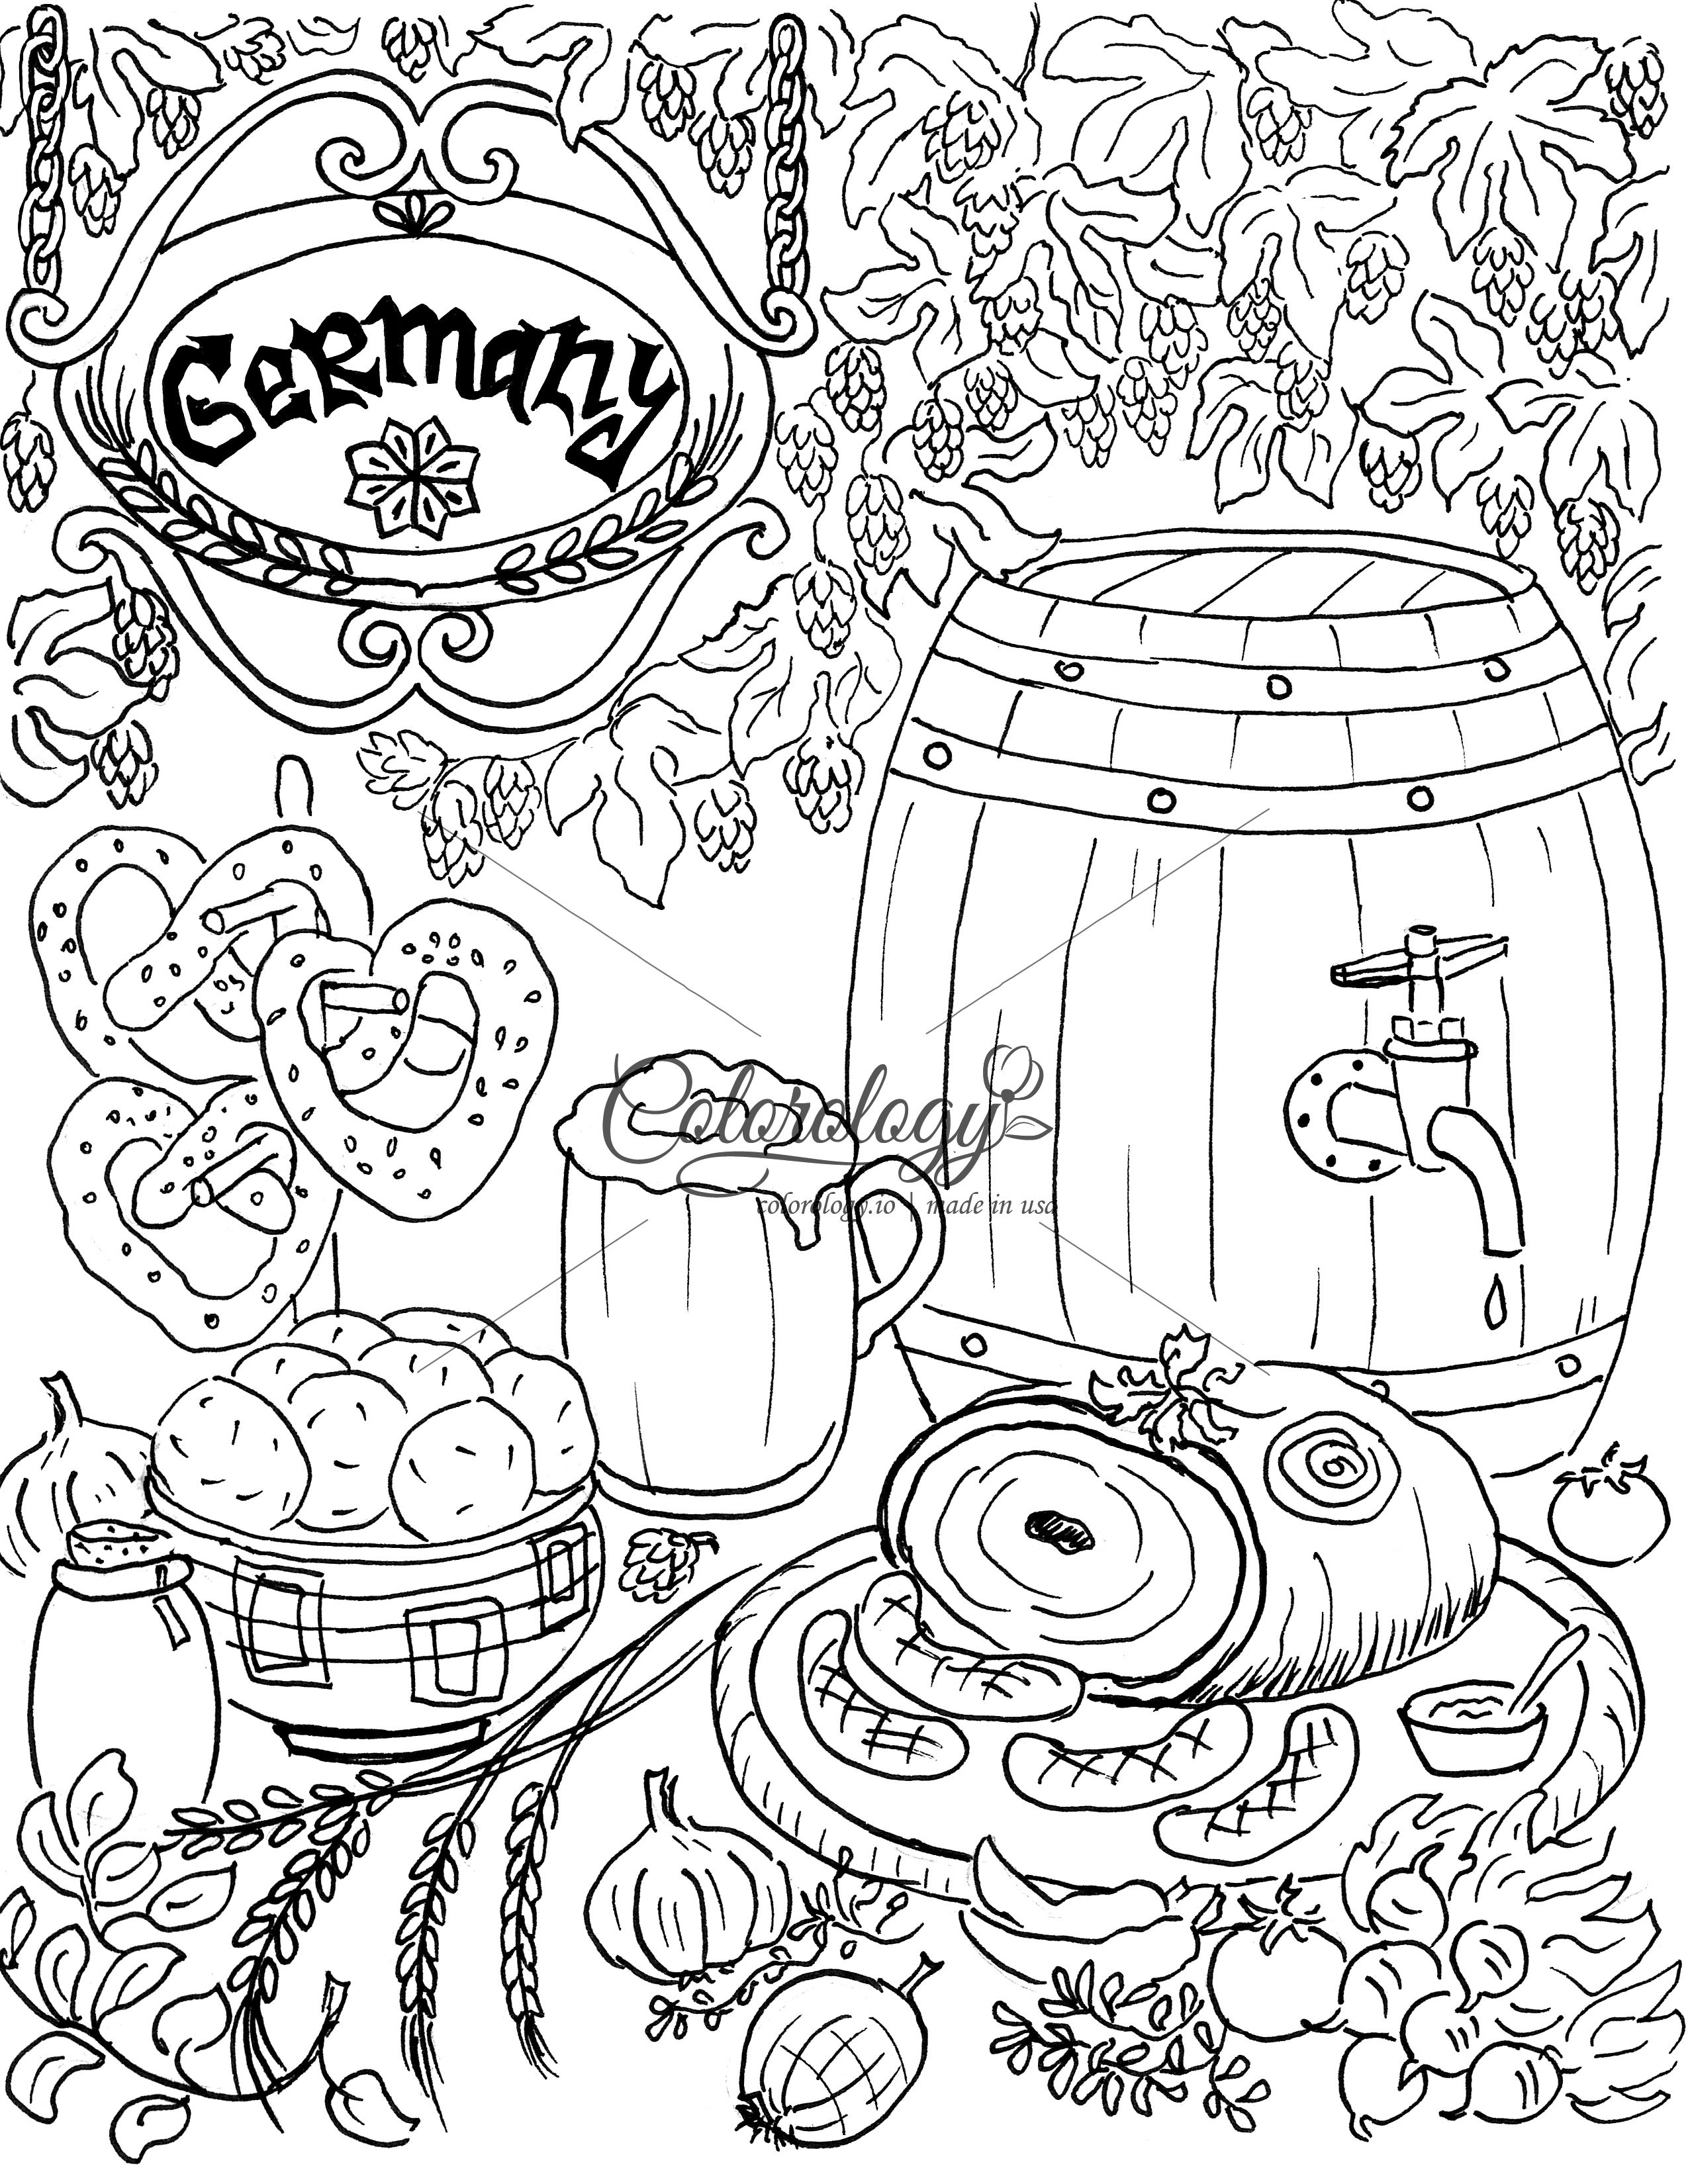 Germany Meals Around The World Quote Coloring Pages Coloring Pages Food Coloring